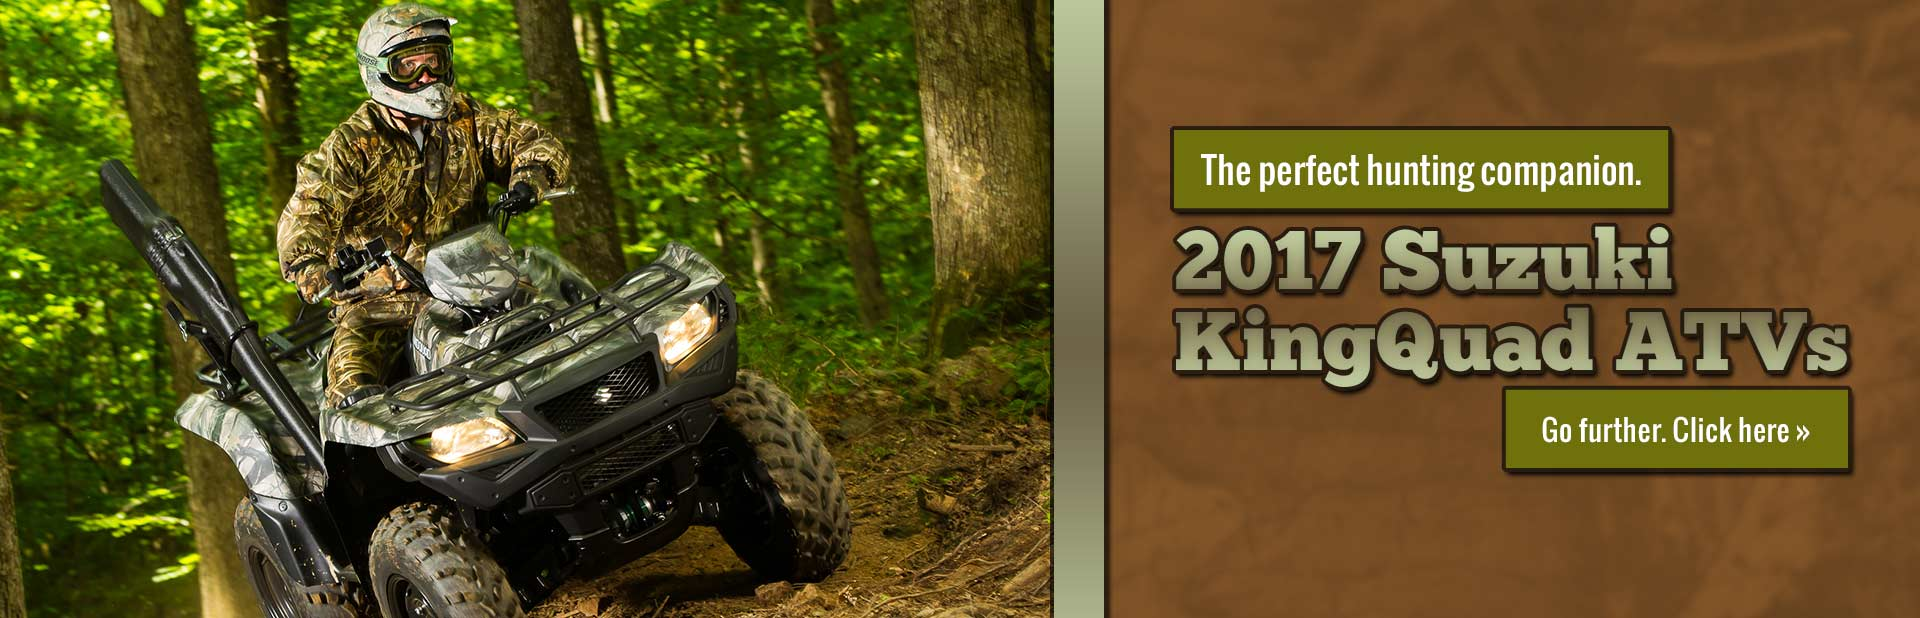 Click here to view our selection of 2017 Suzuki KingQuad ATVs!